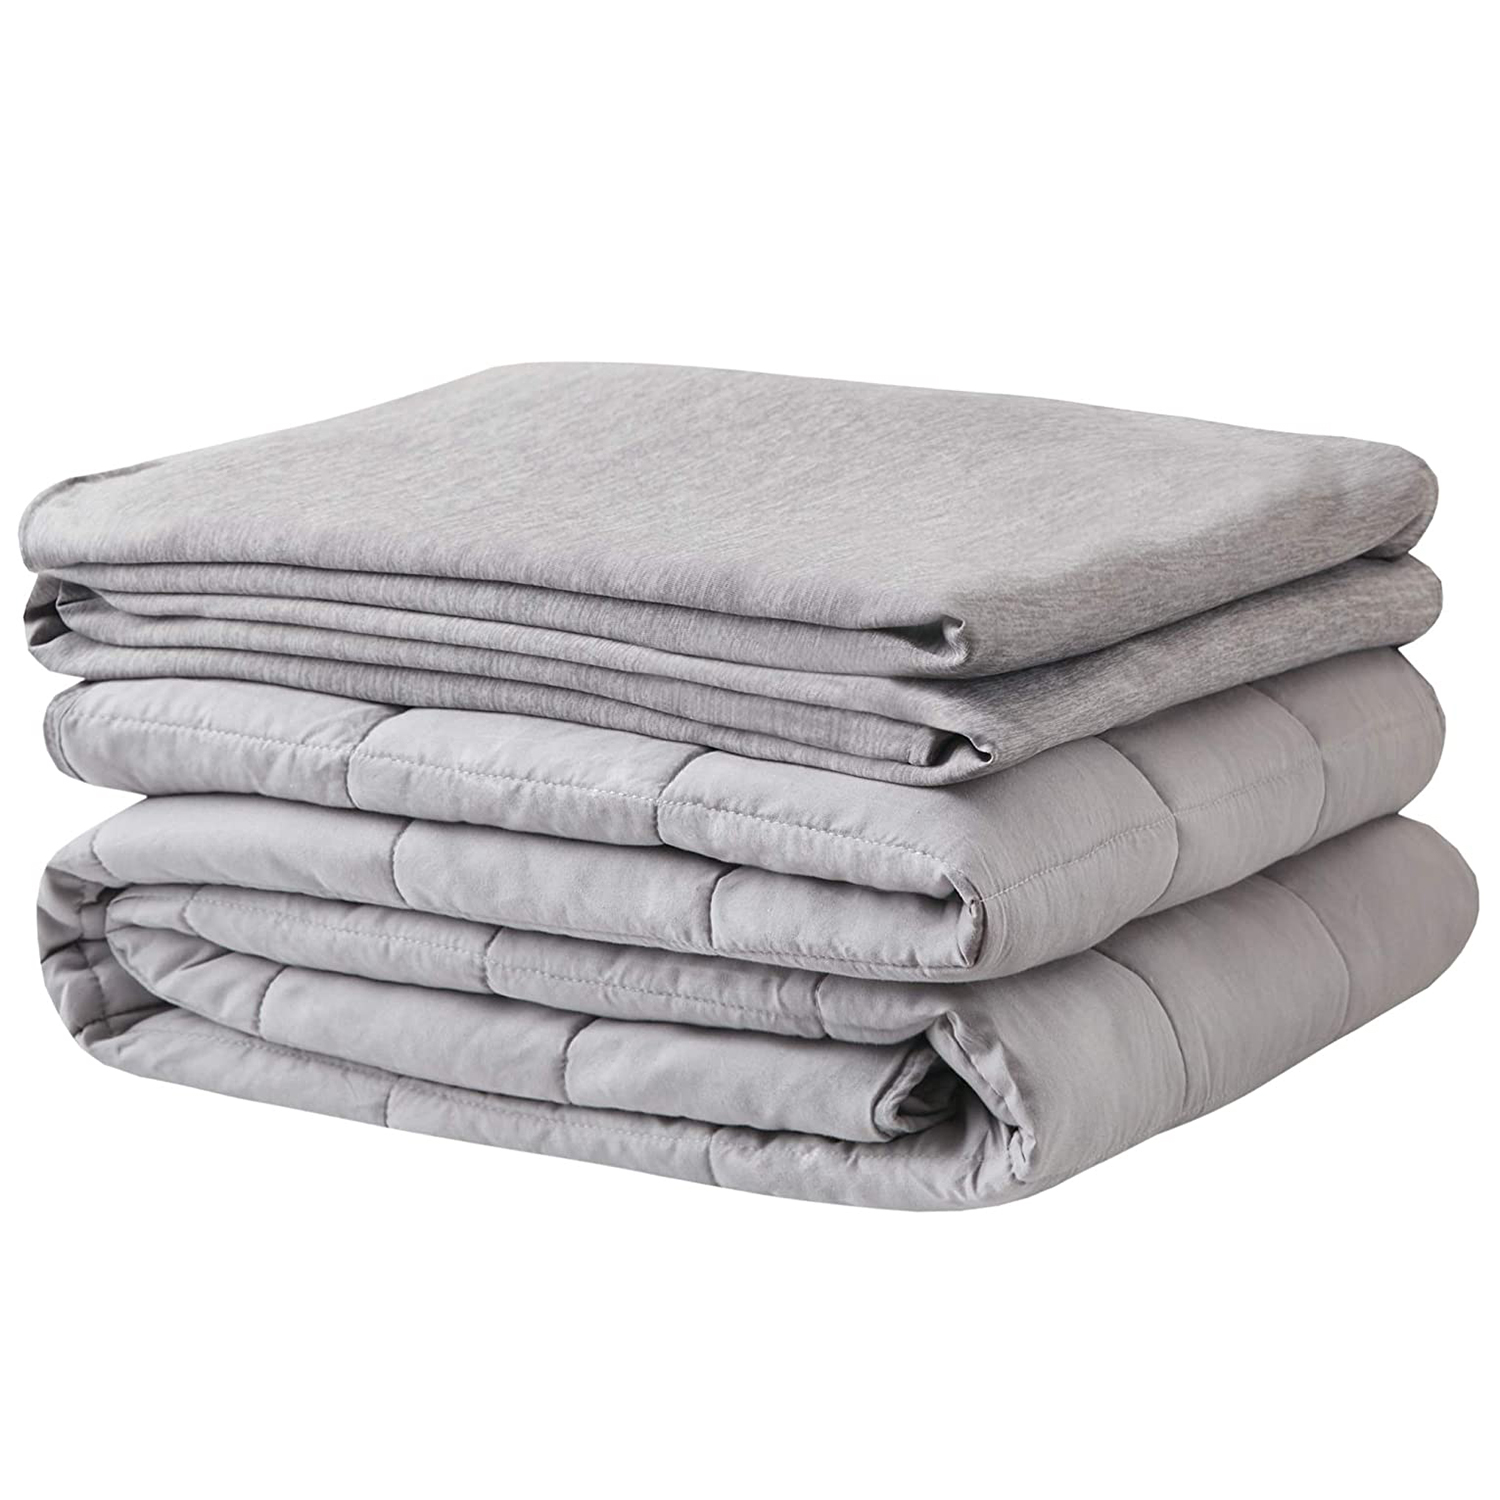 Weighted Blanket 100% Cotton Cooling Cover